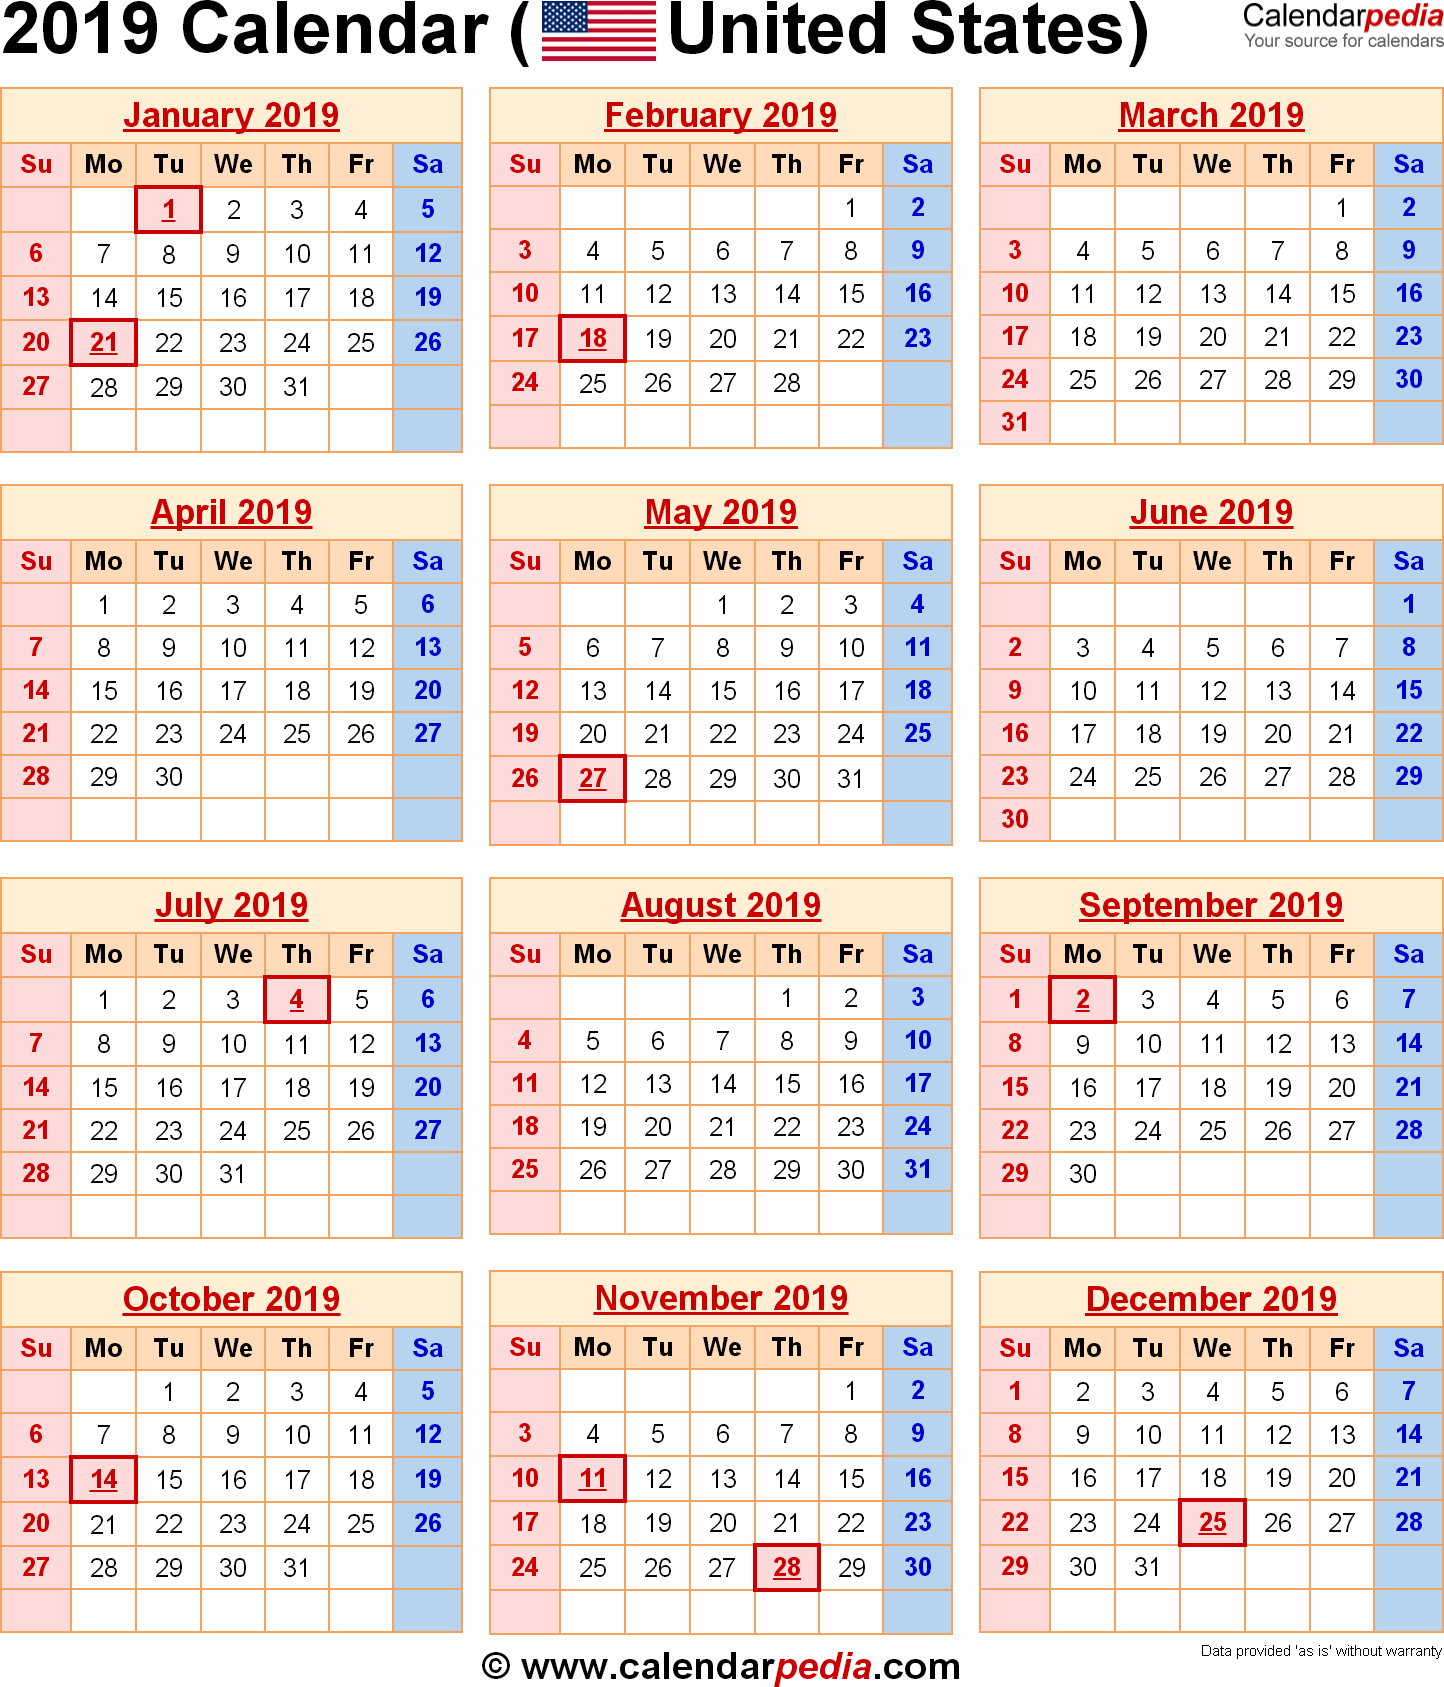 Government Fiscal Year 2019 Calendar With Federal Holidays Excel PDF Word Templates